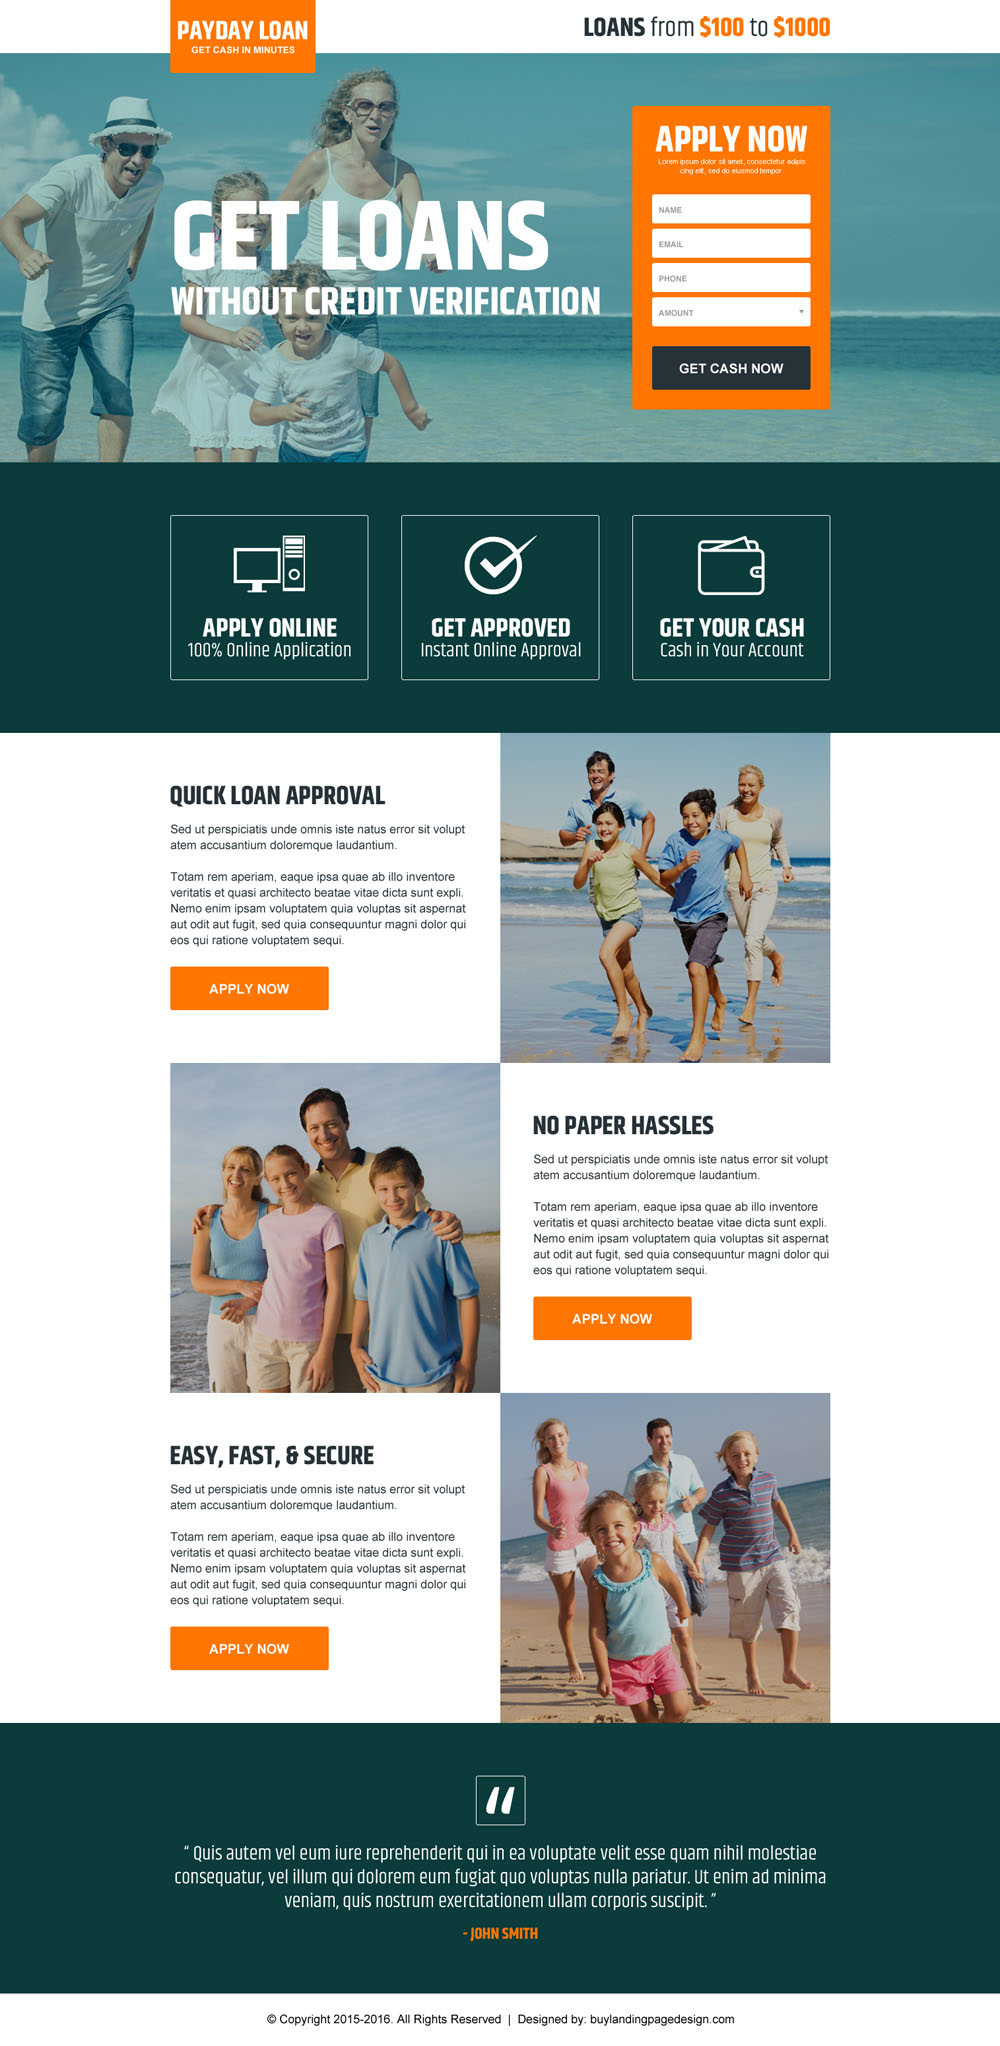 get-payday-loan-without-credit-verification-lead-gen-landing-page-design-024